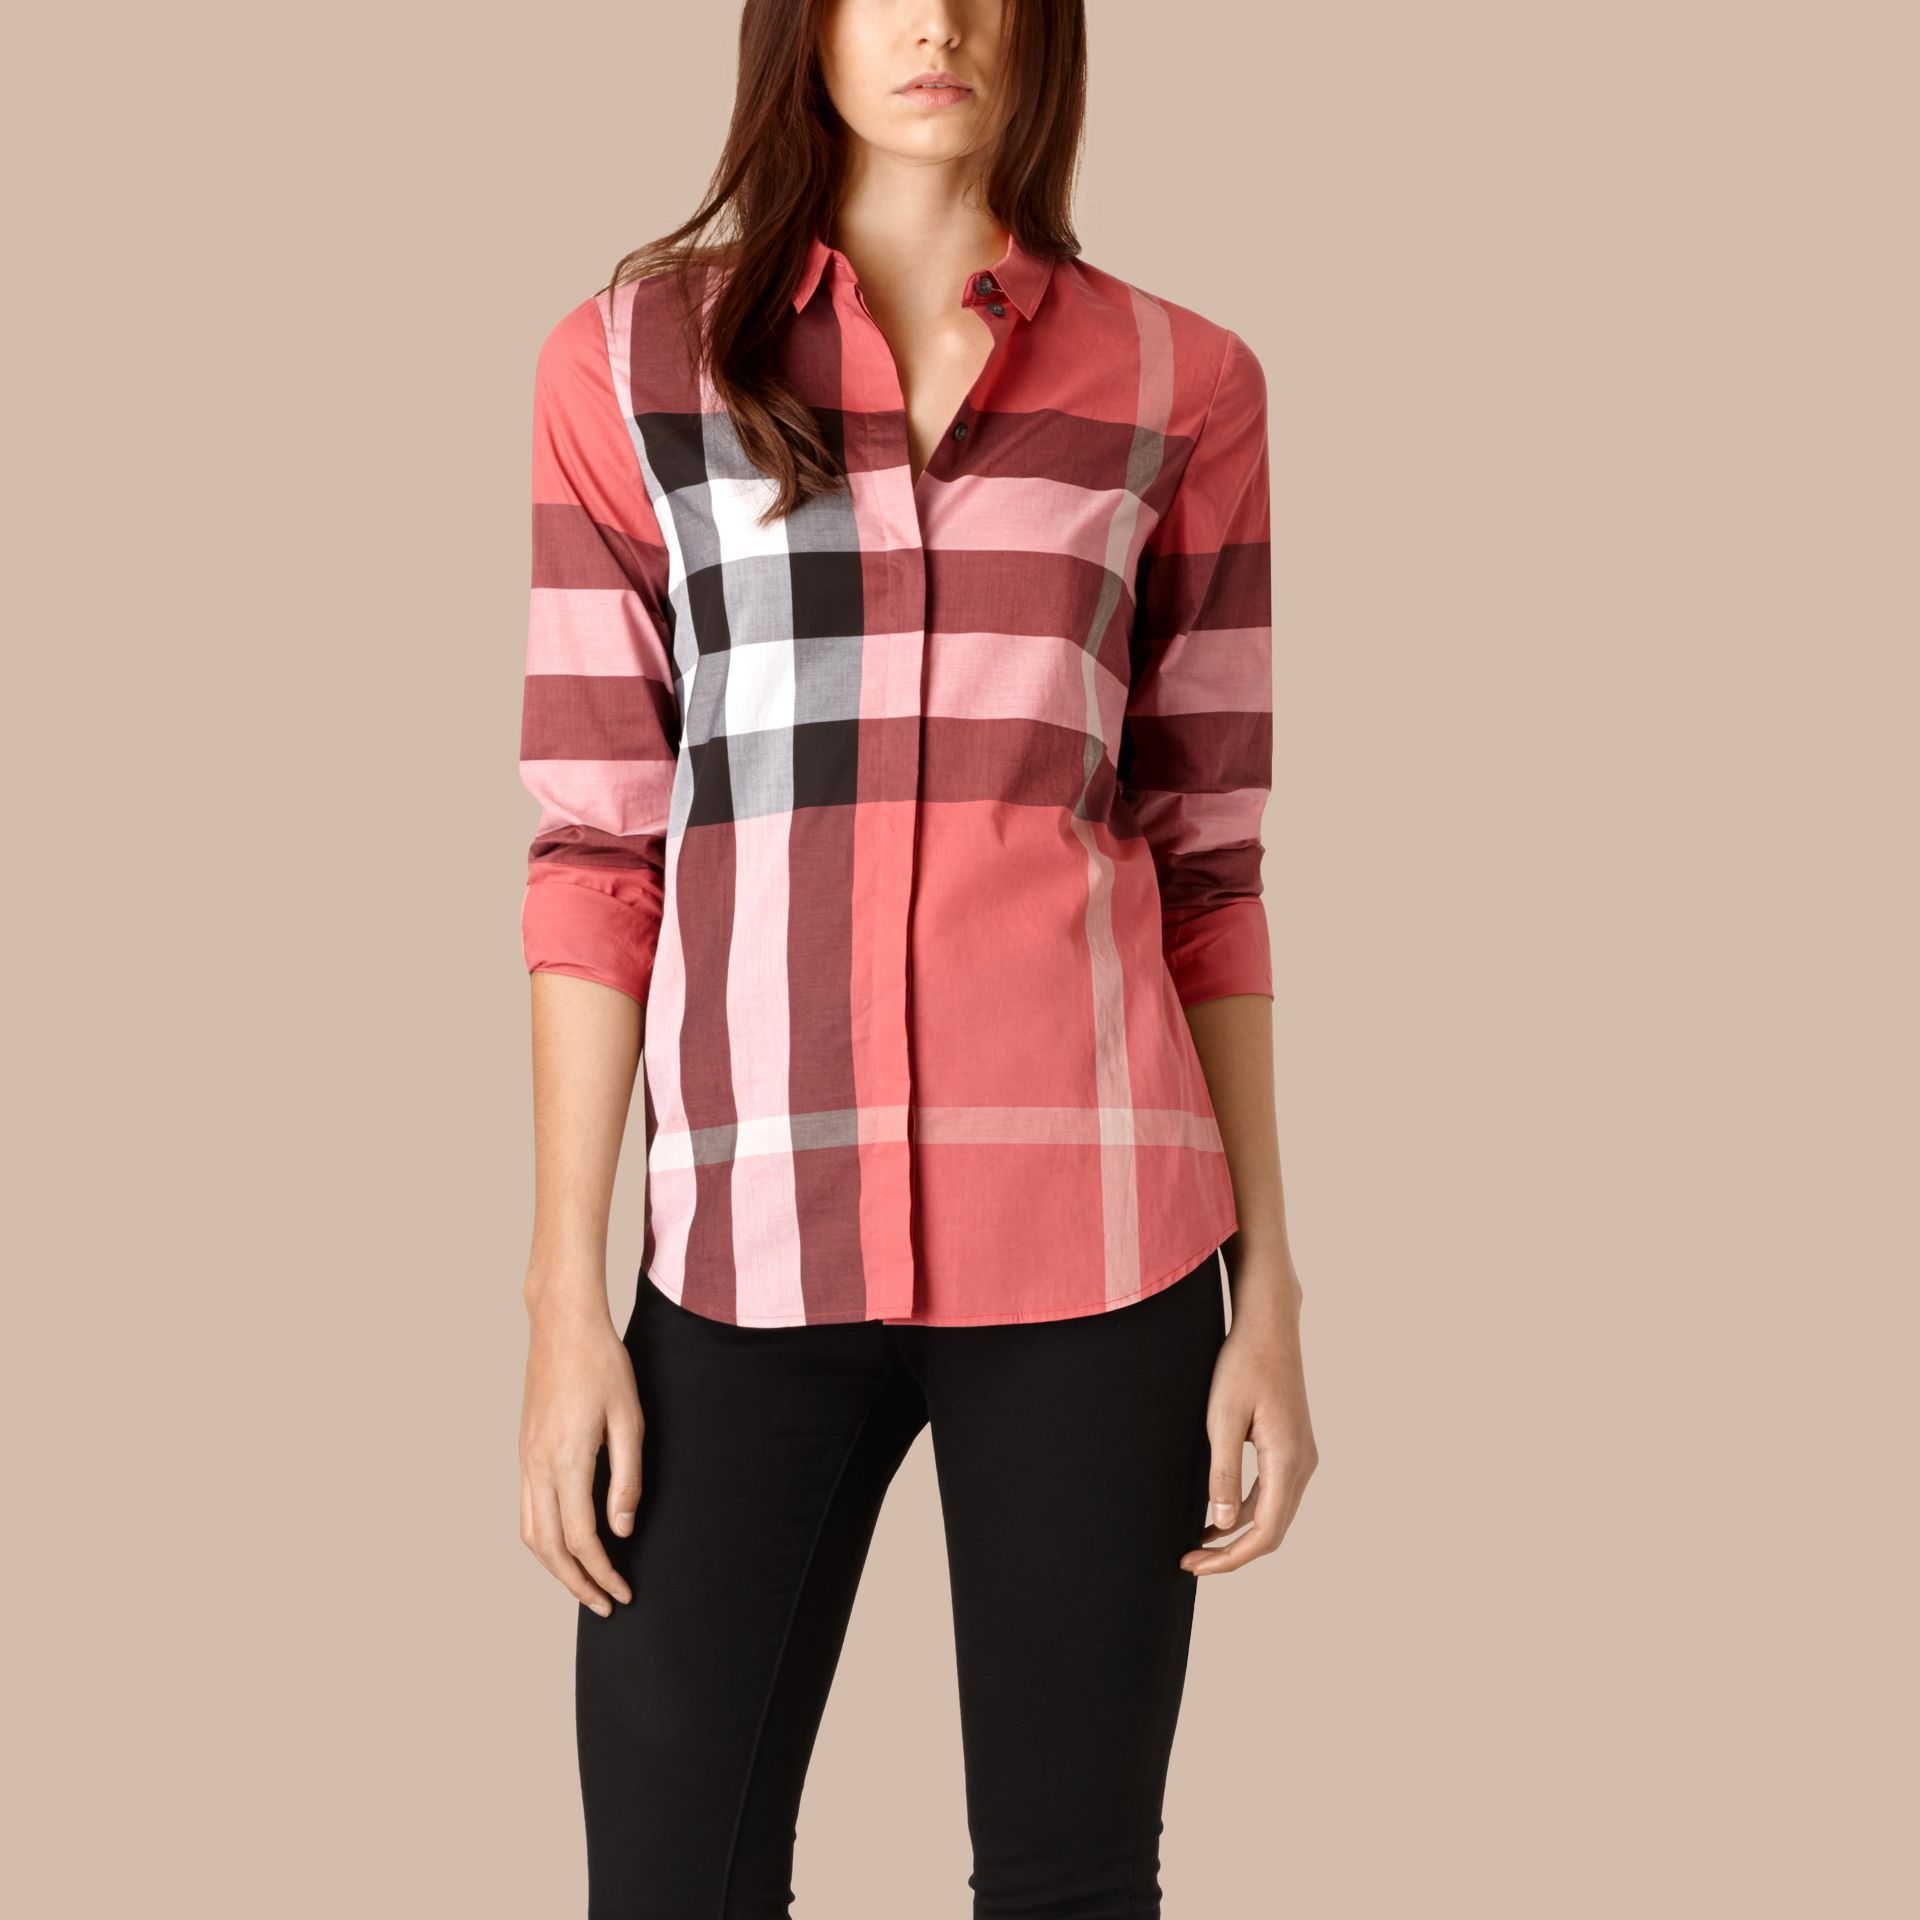 Bright copper pink Check Cotton Shirt Bright Copper Pink - gallery image 1